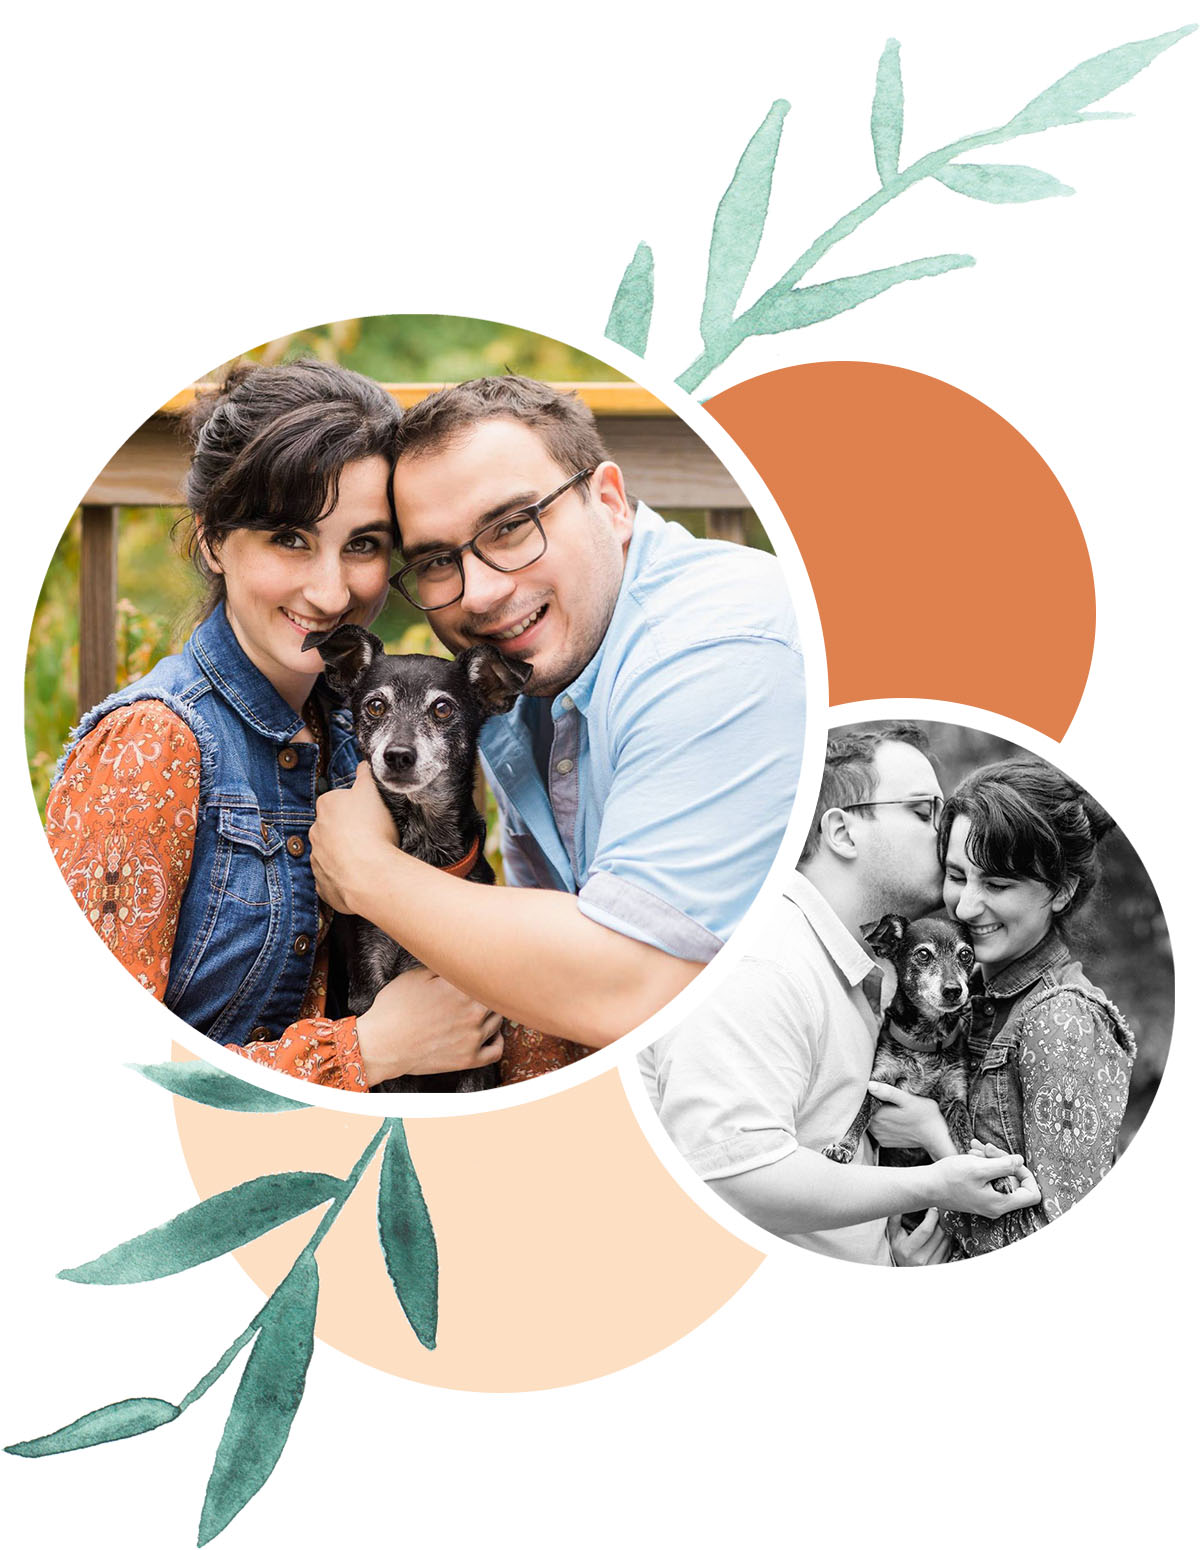 Photo of my fiancé and I by Ginia Worrell Photography